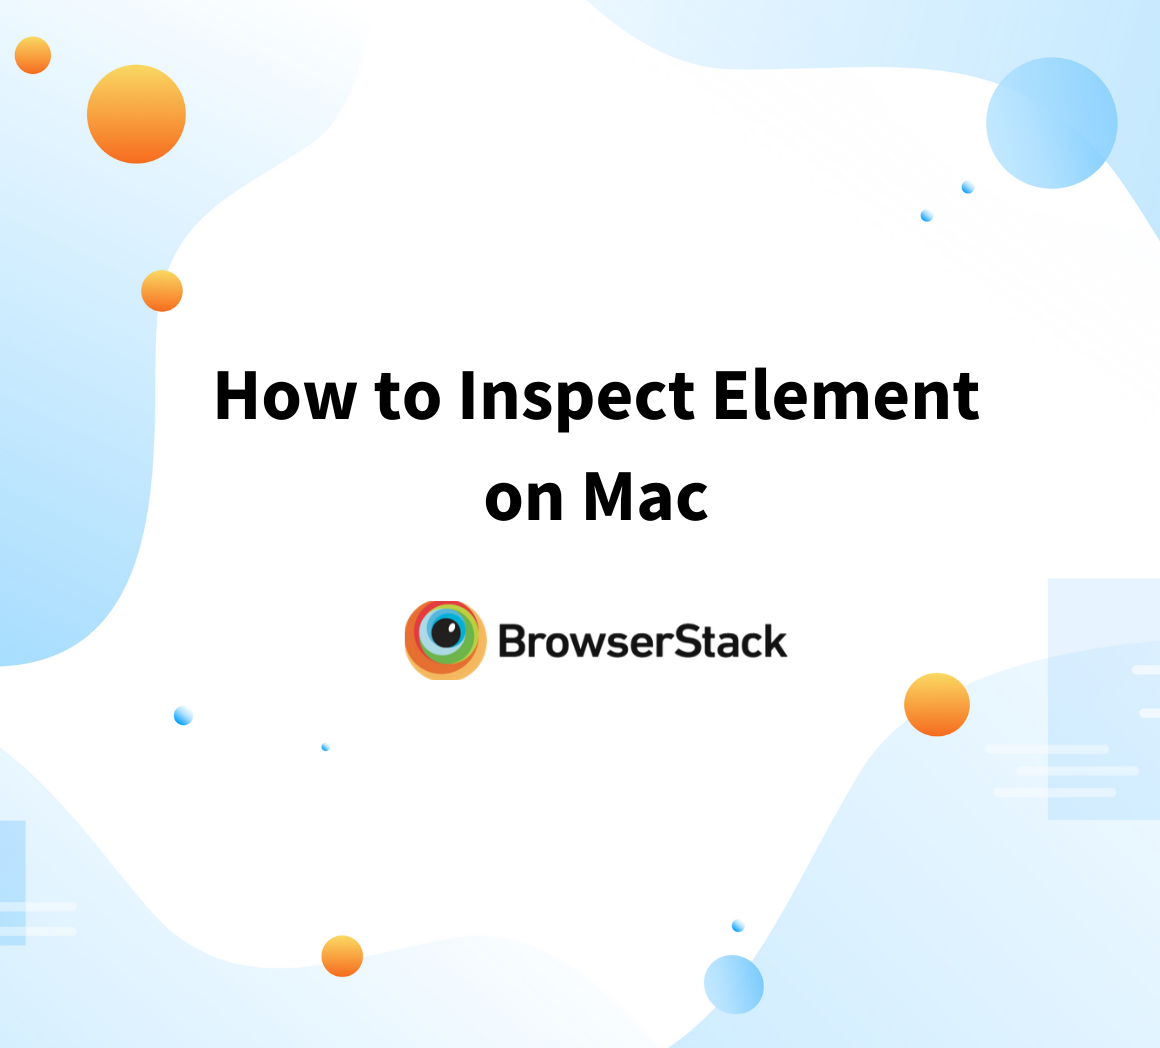 How to Inspect Element on Mac